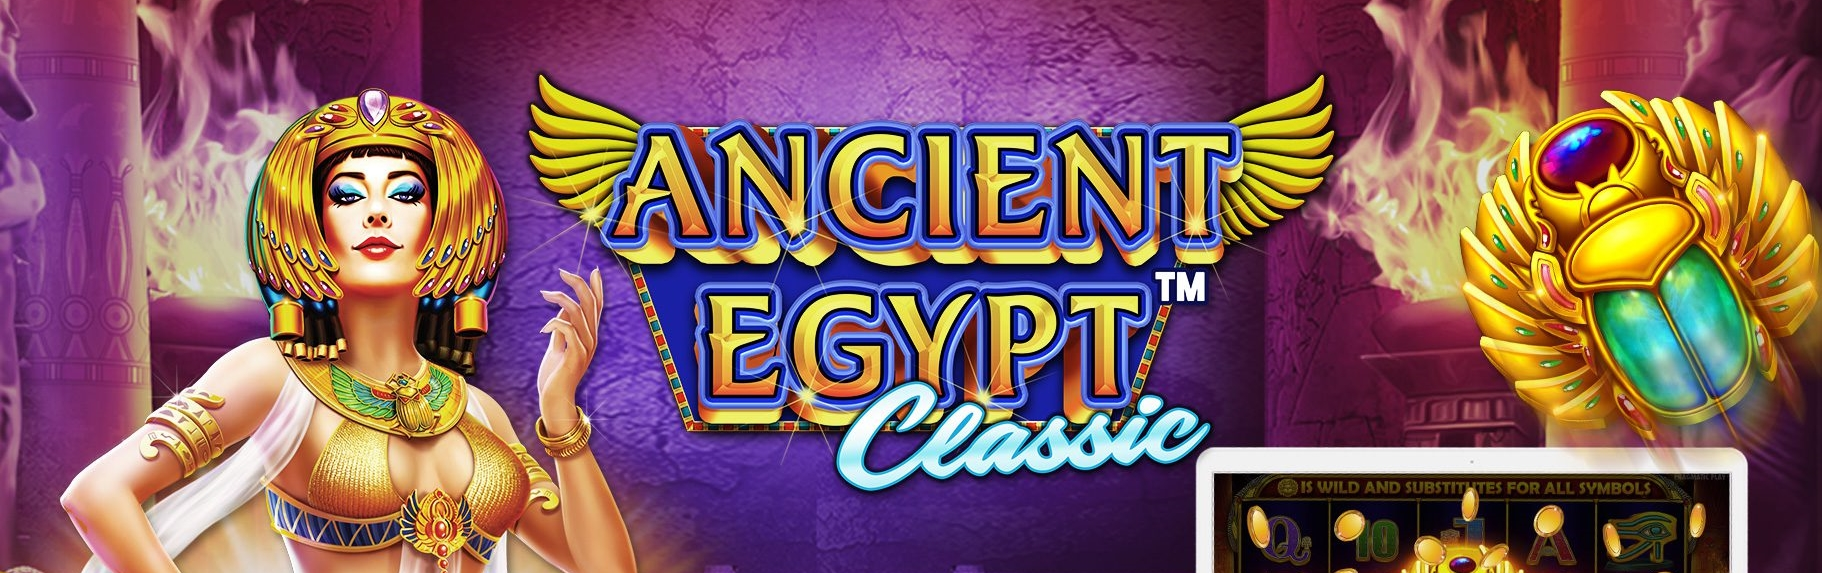 Ancient-Egypt-Classic-Slot